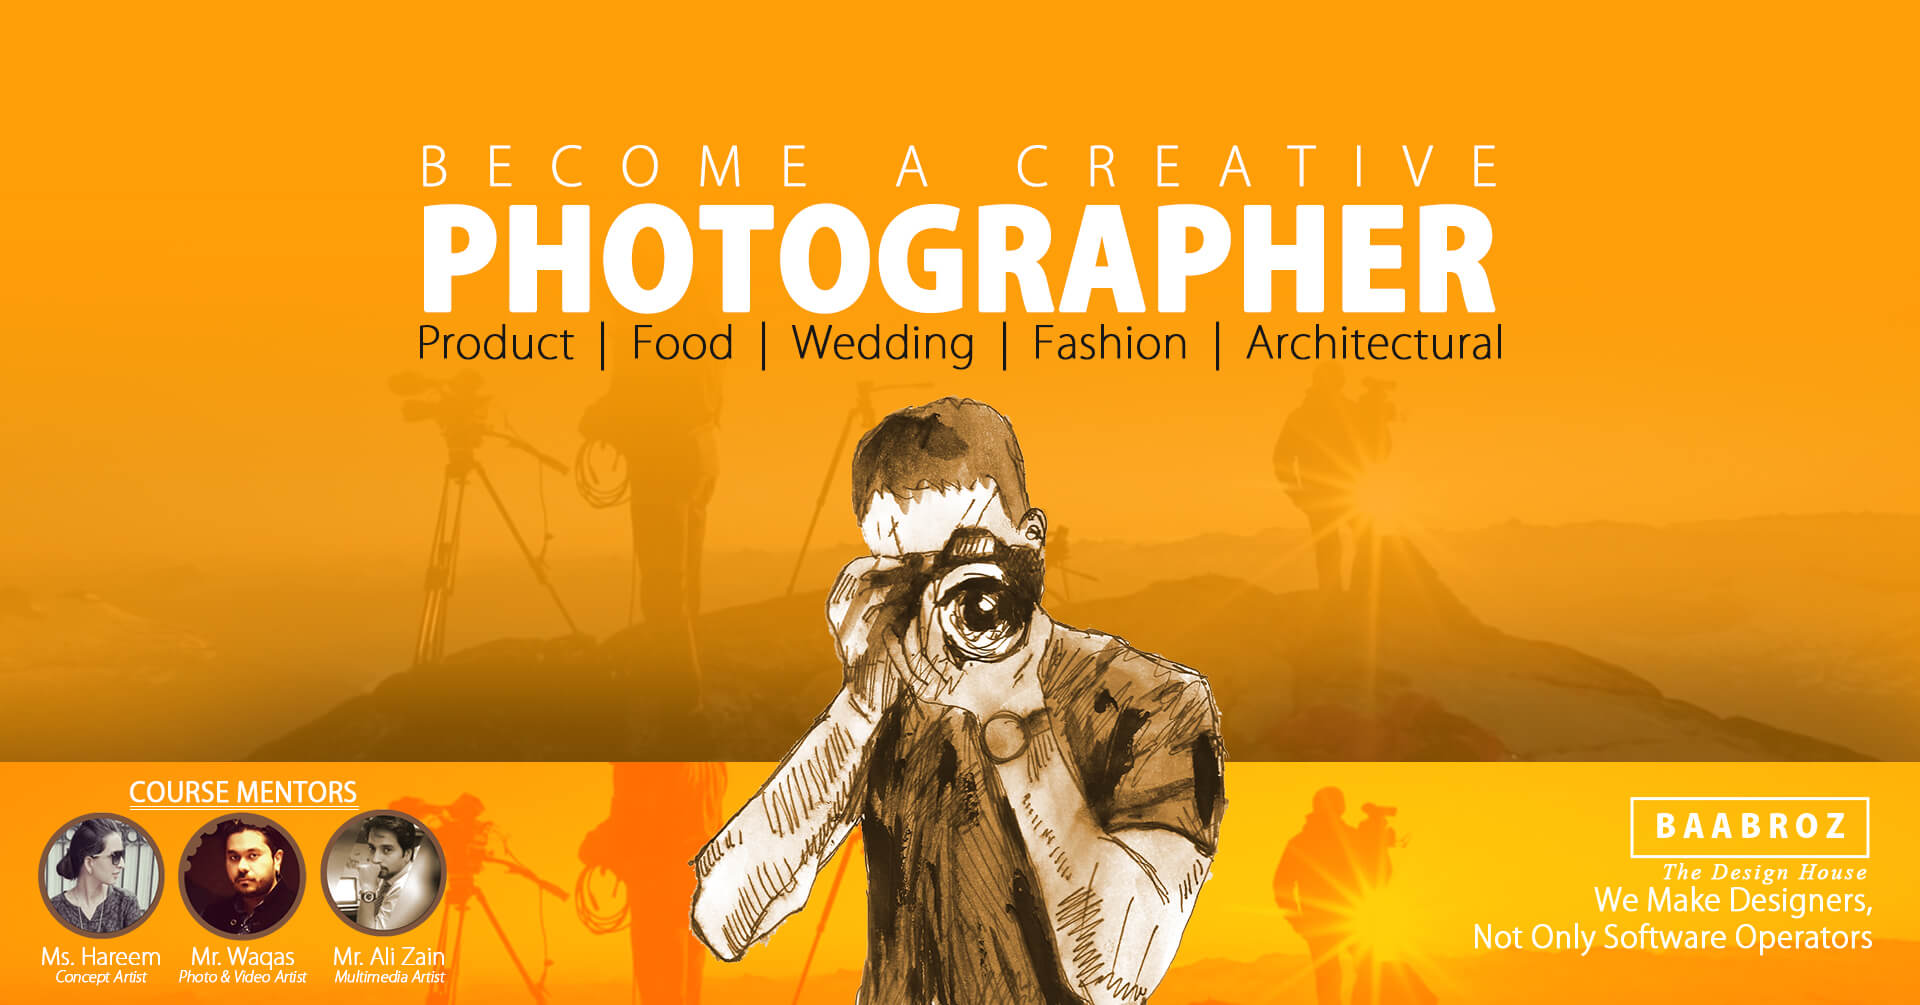 Photography Courses In Lahore Baabroz Photography Studio